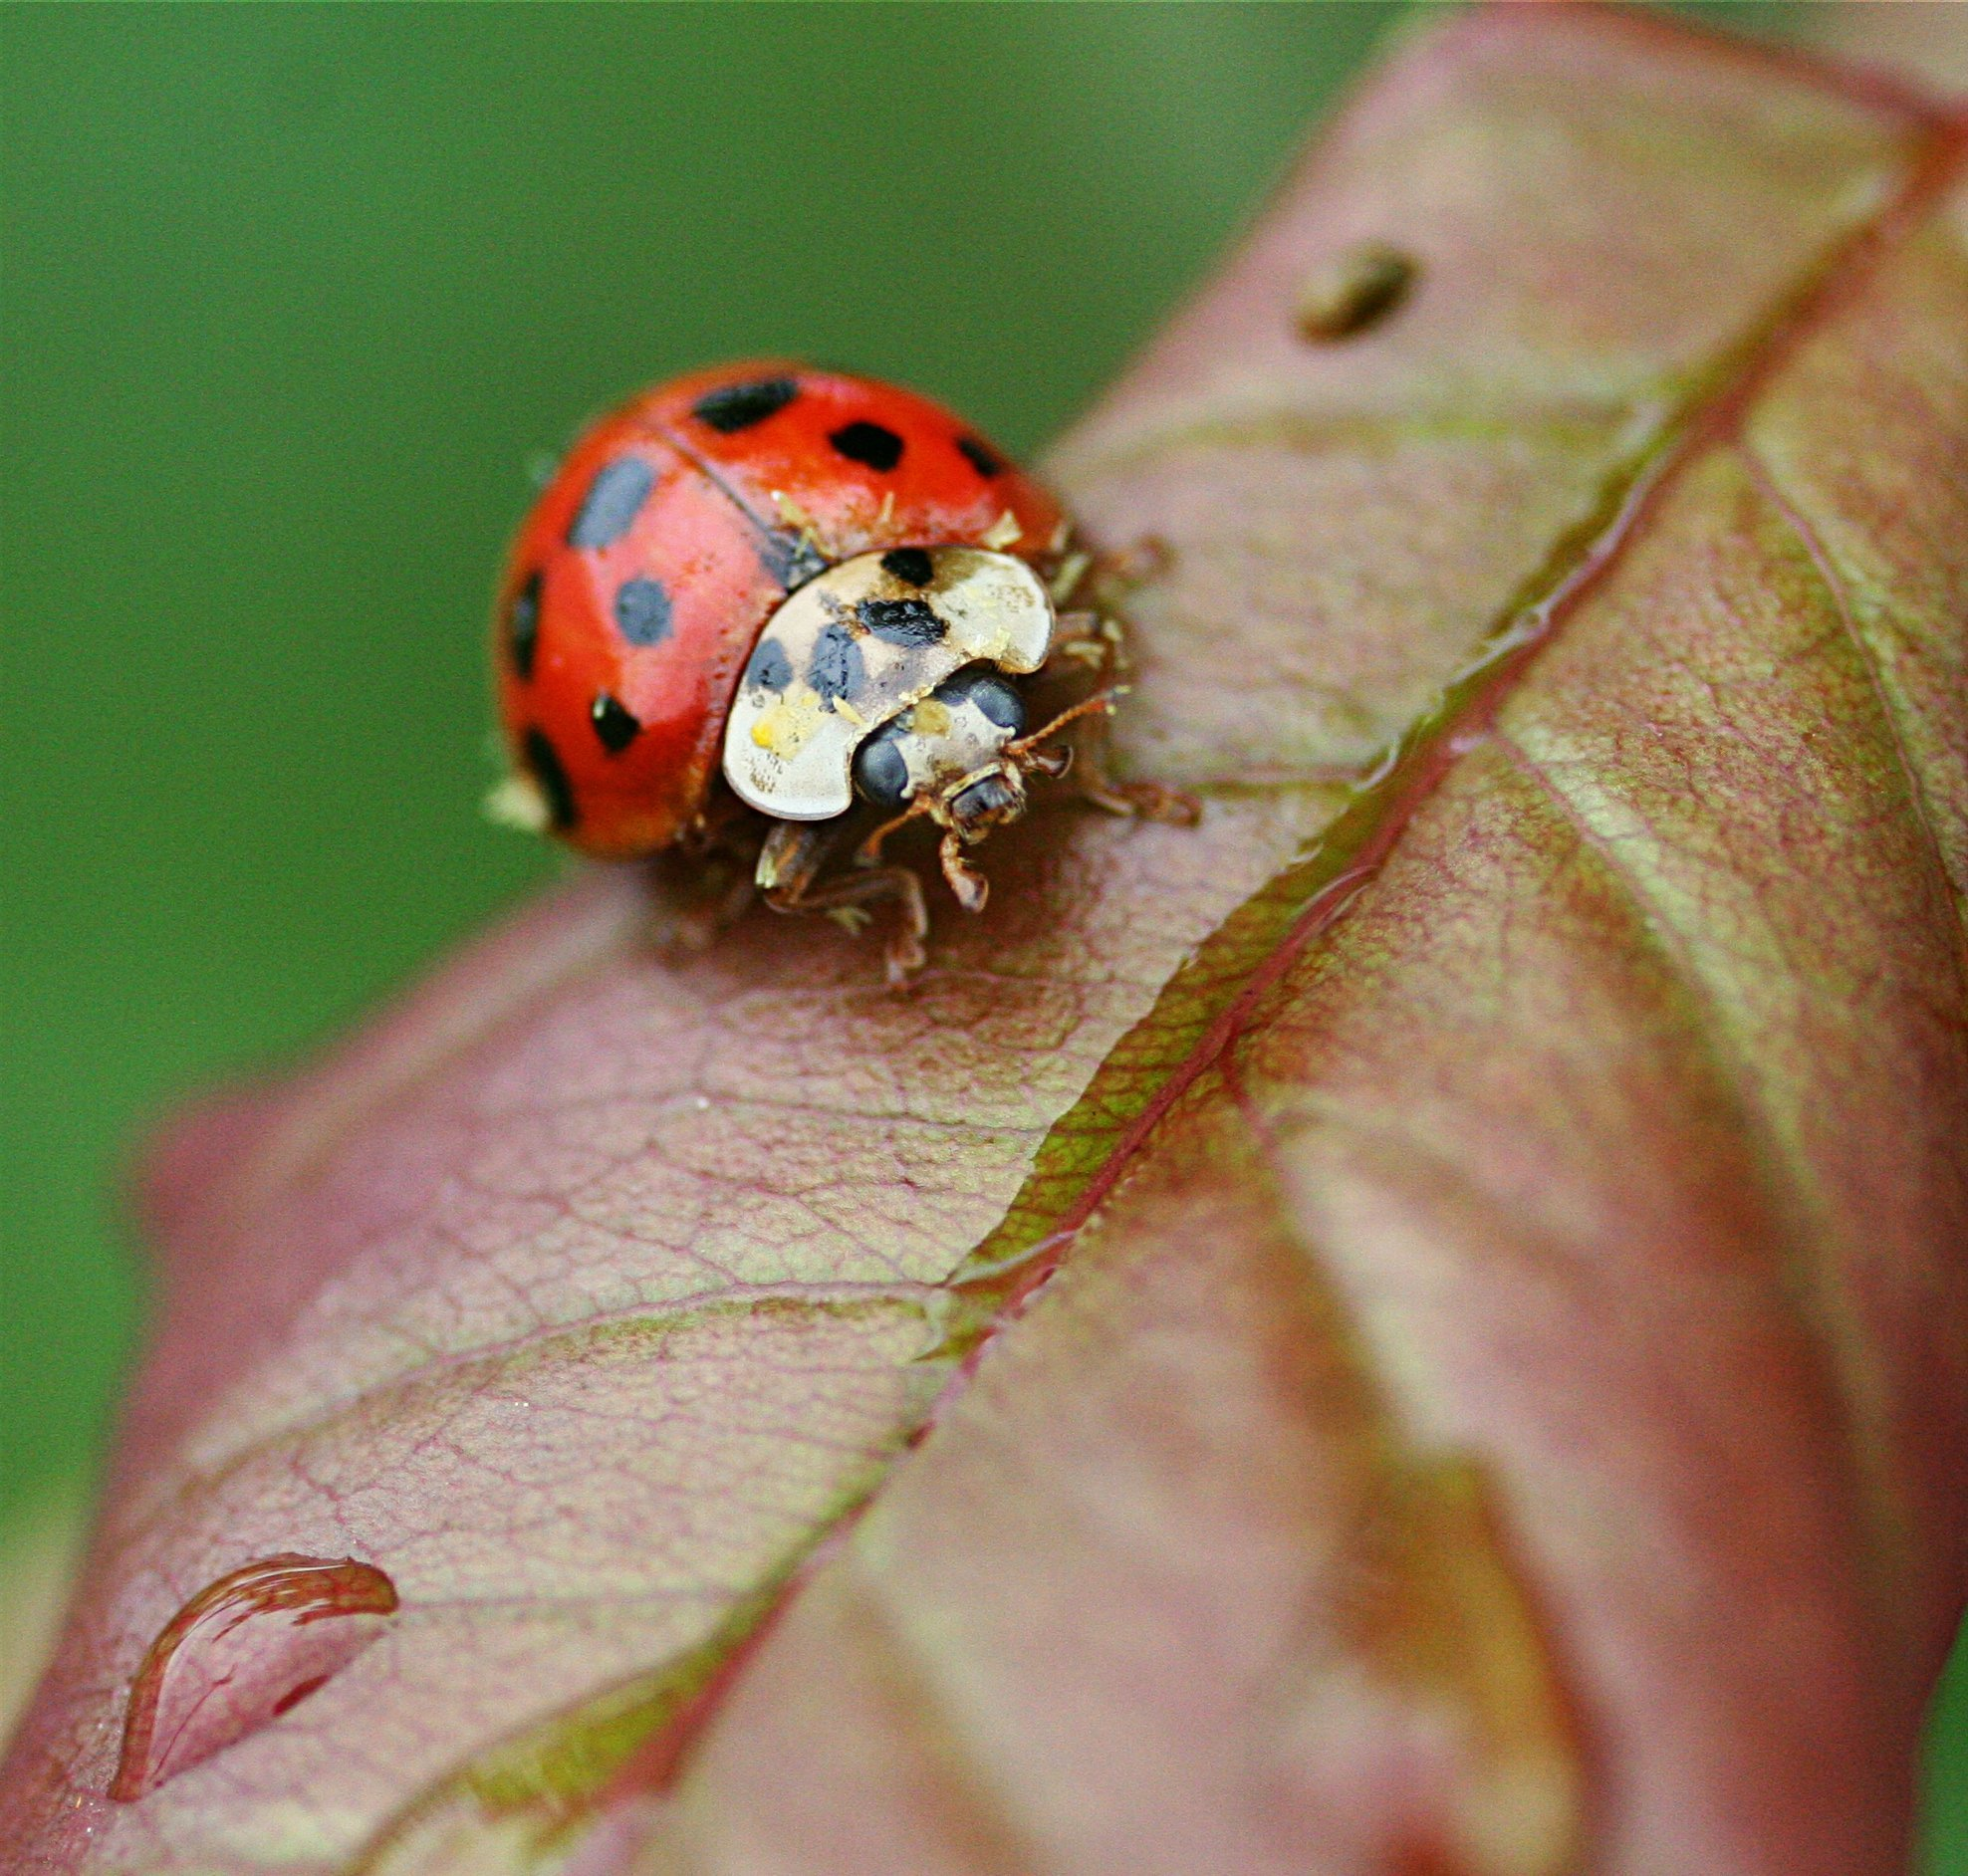 beetle ladybug insects bugs HD Wallpaper